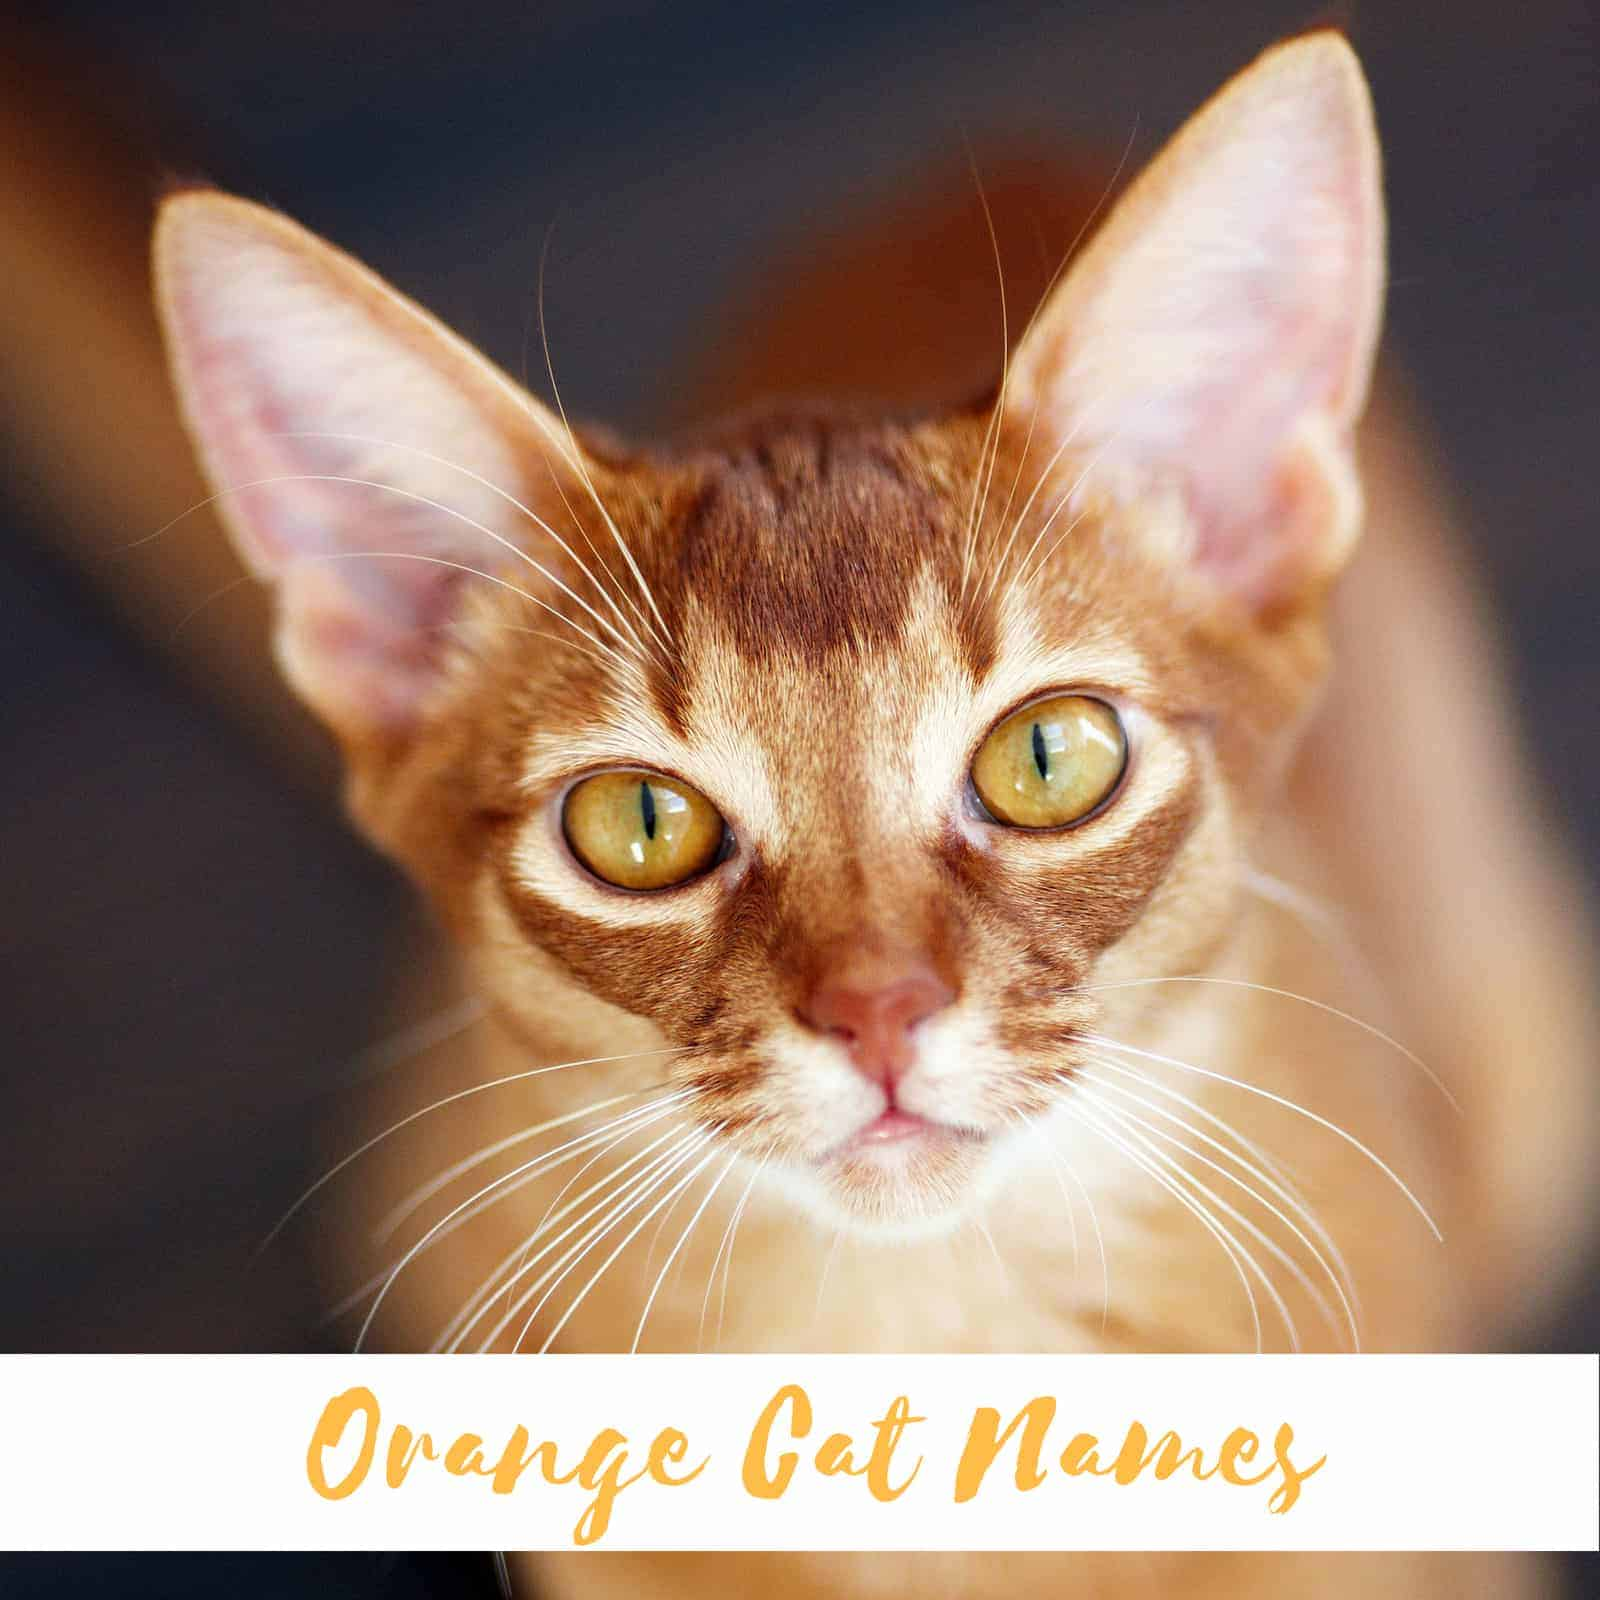 500 Orange Cat Names - The only list you'll need to find the